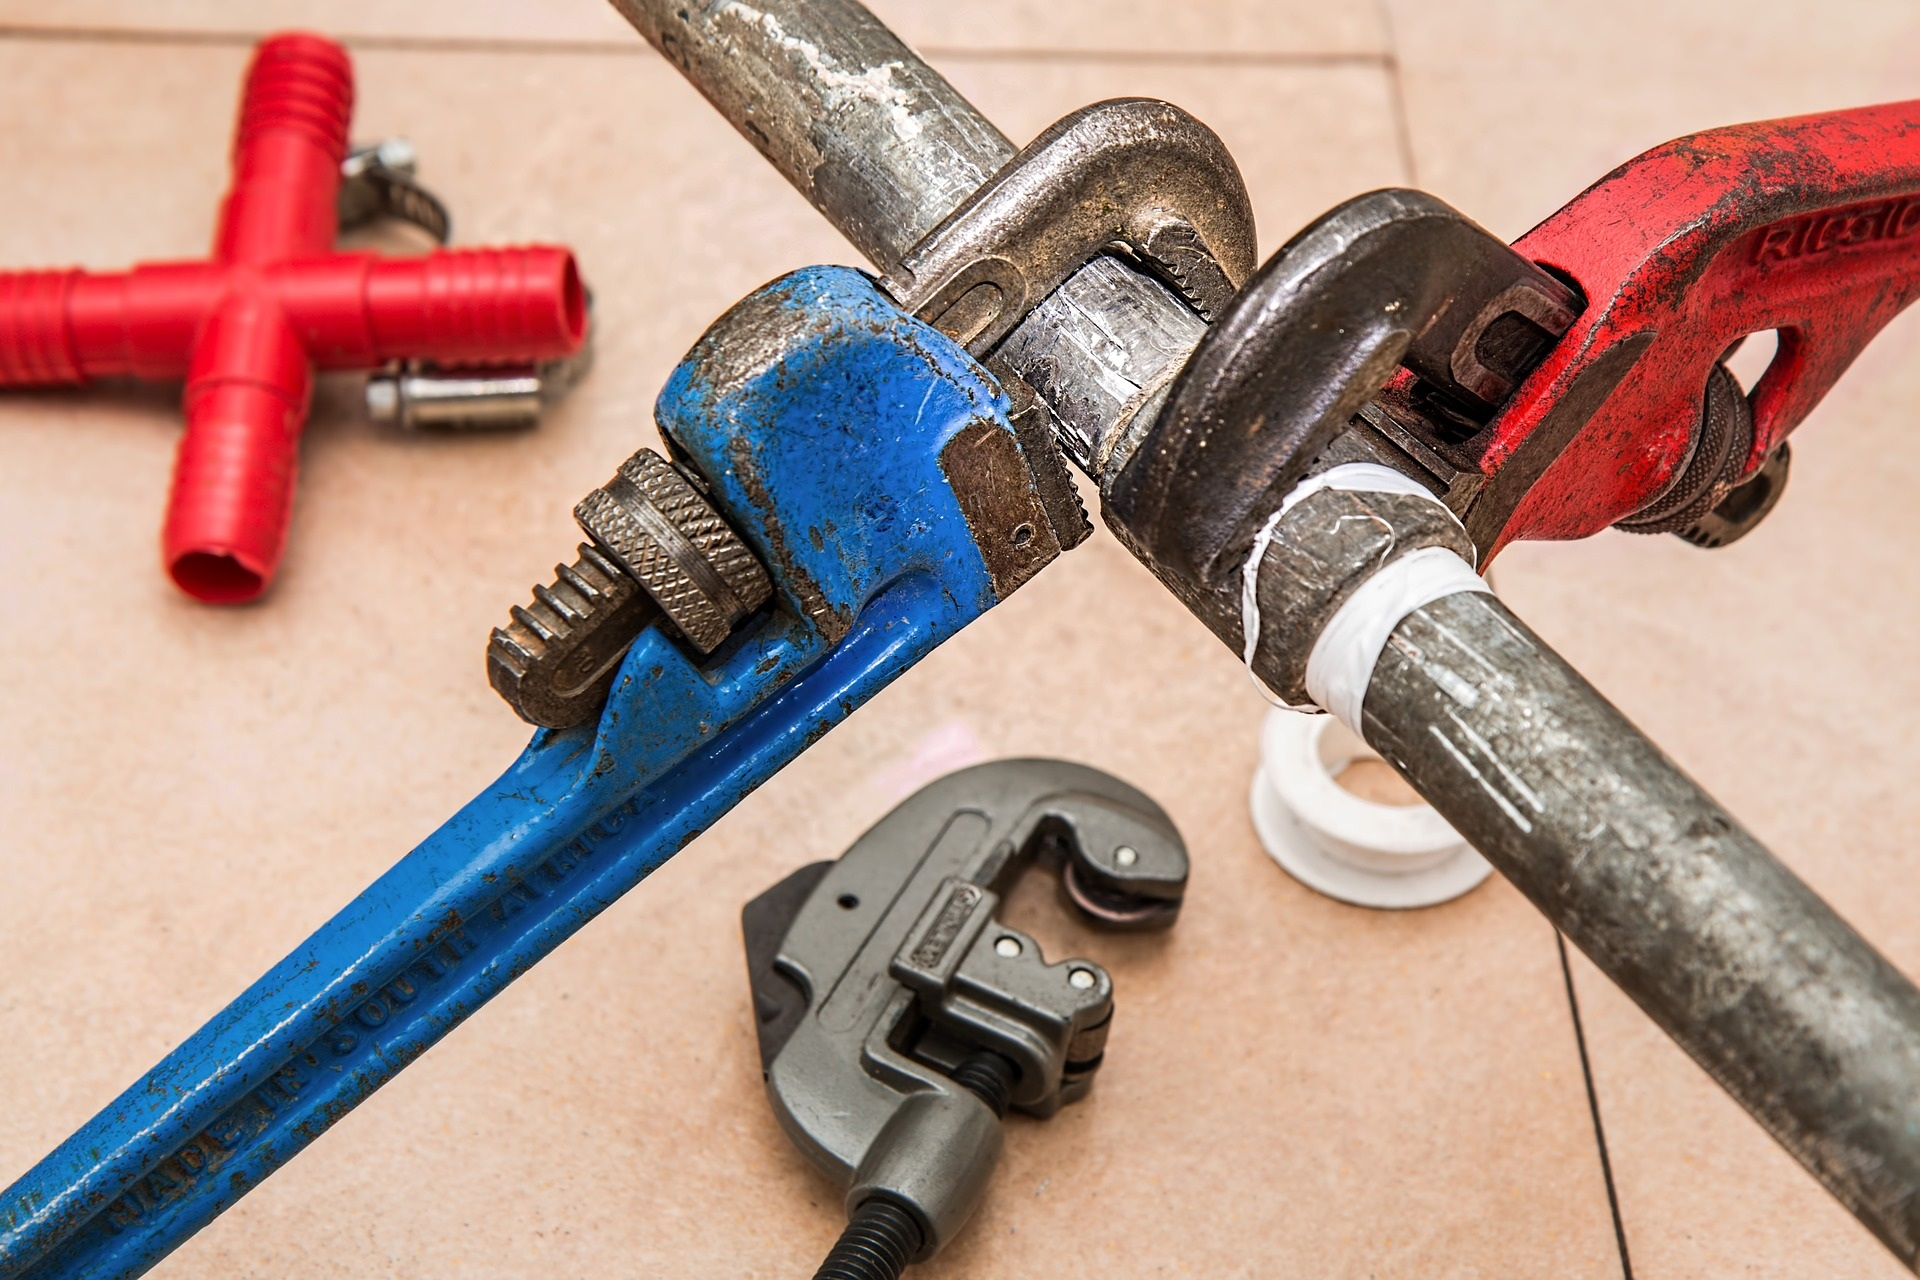 10 Fun Facts About Plumbing You Probably Never Knew